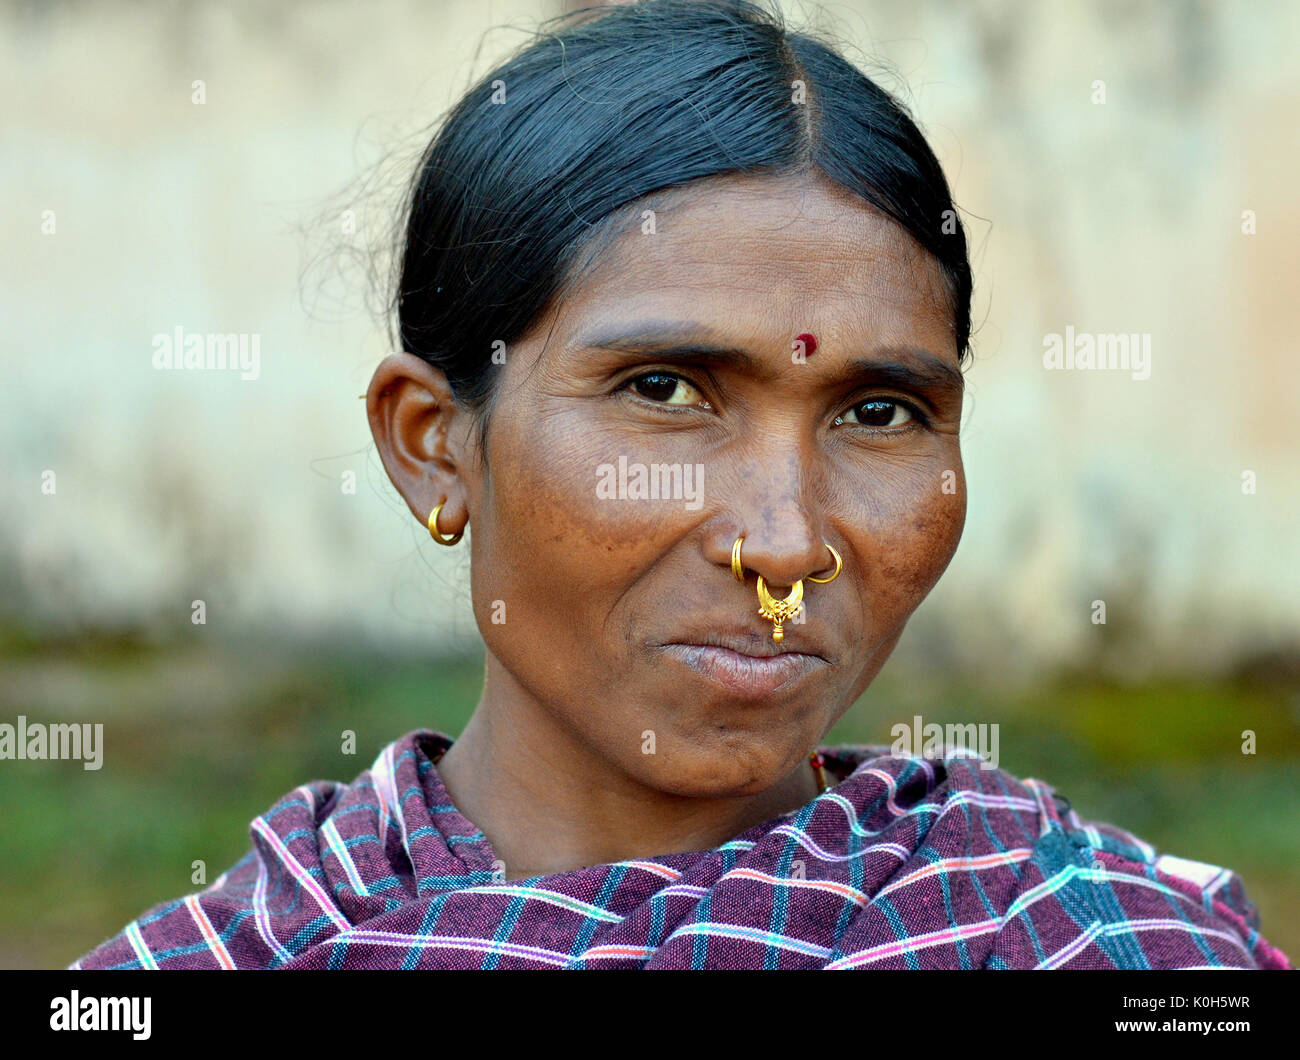 Mature Indian Adivasi market woman with three golden nose rings, nose jewellery, distinctive tribal earrings, and - Stock Image